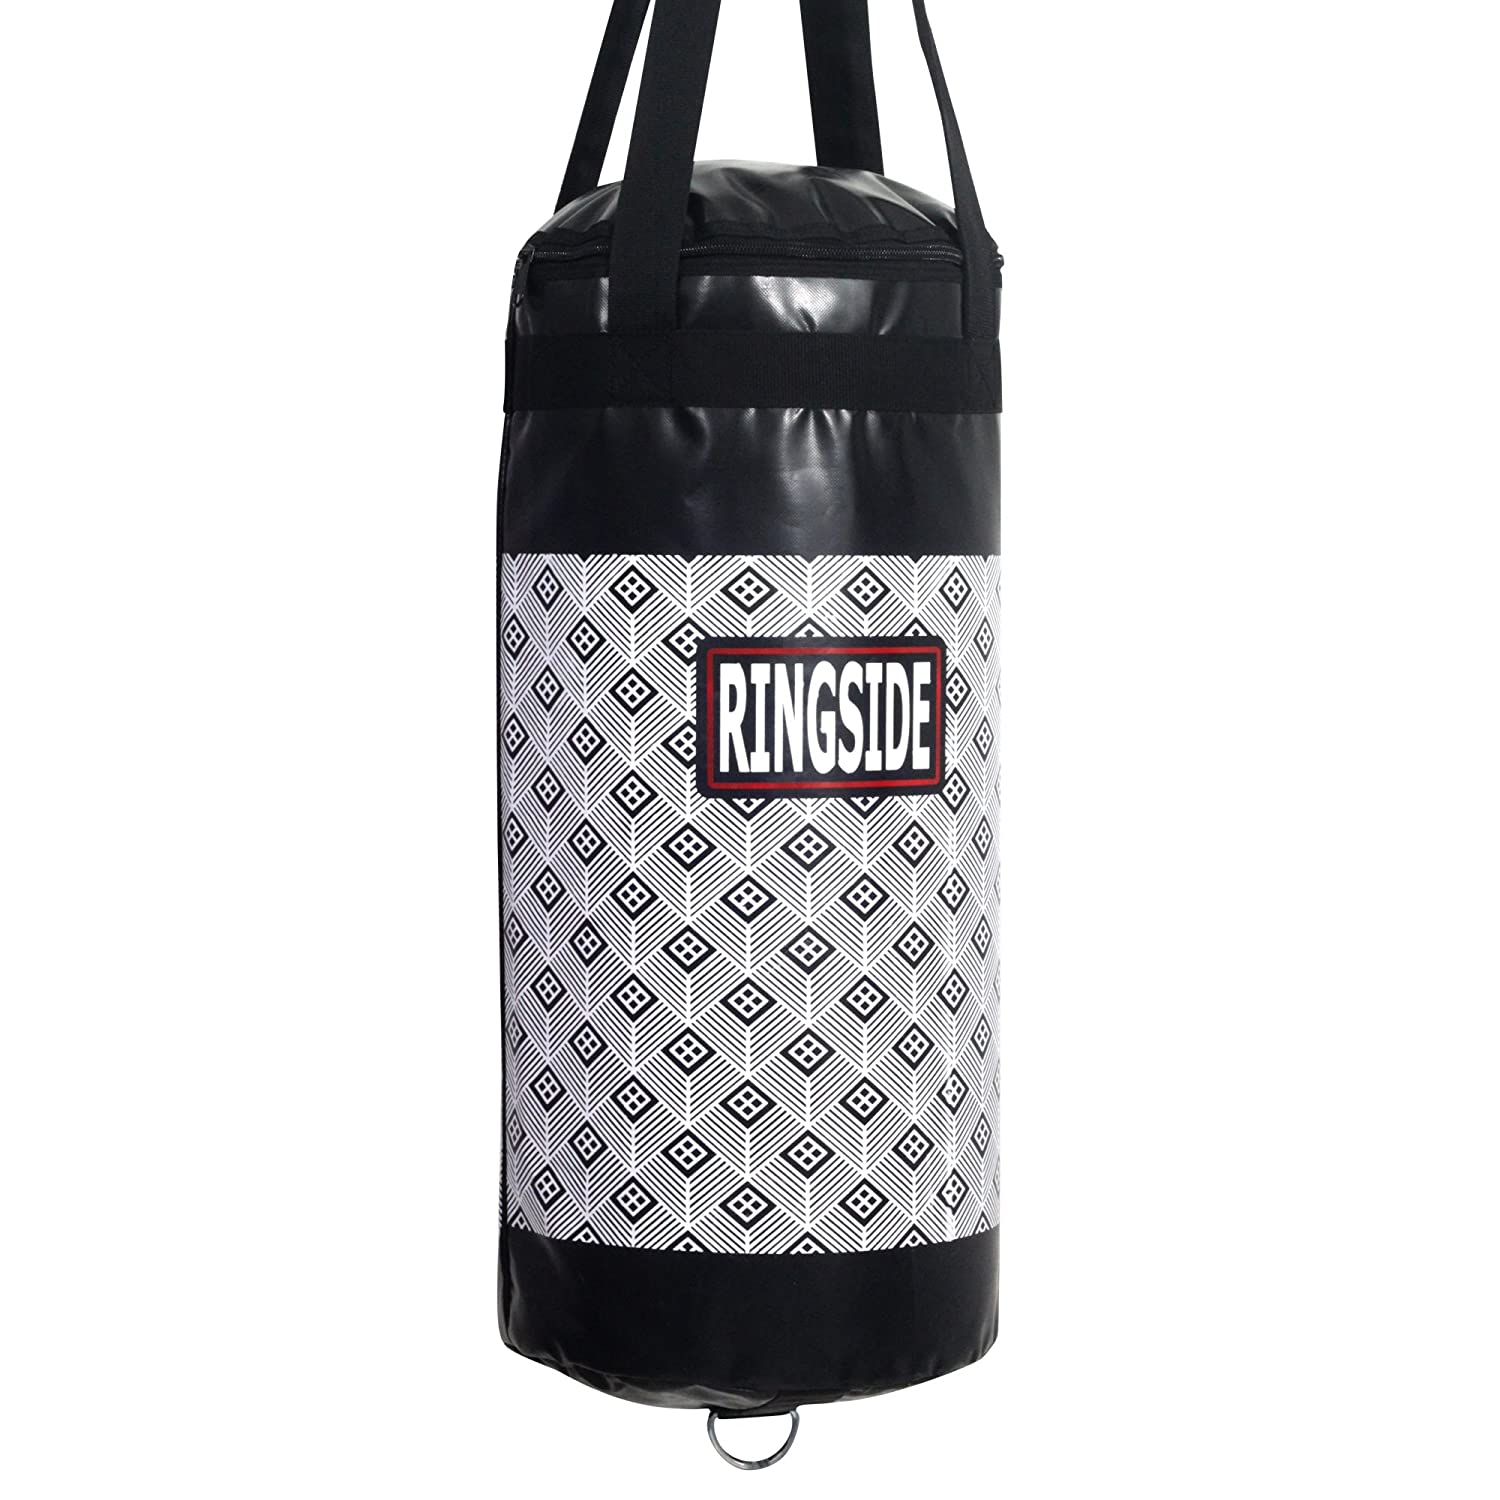 Ringside 40 Punching Small Unfilled Punching Bag 14x30\ Unfilled ホワイト 14x30\ B00WZVLG32, 幌加内町:234e390b --- capela.dominiotemporario.com